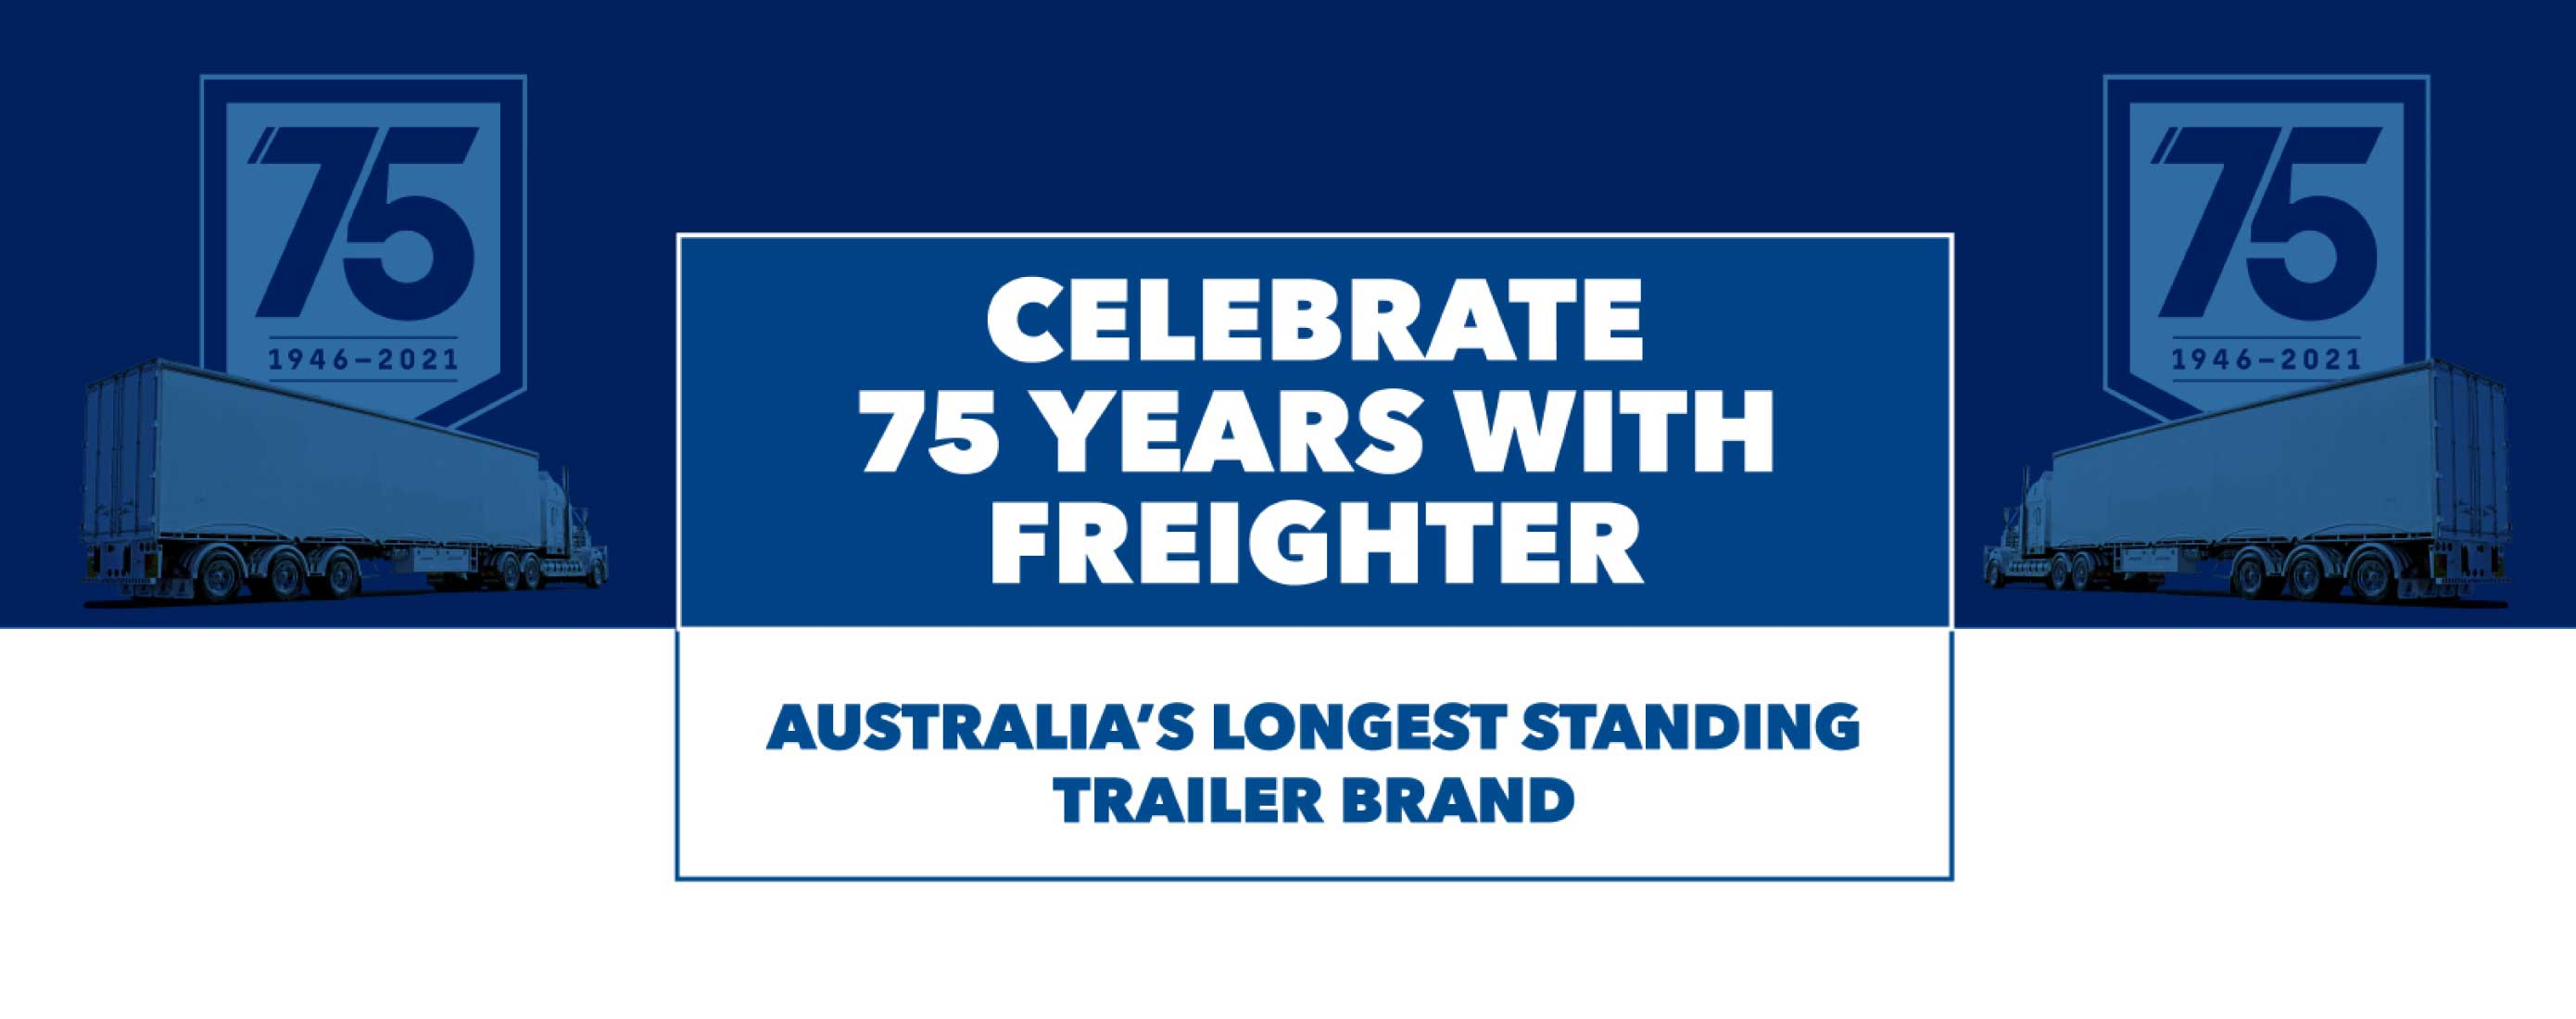 Celebrate 75 years with Freighter